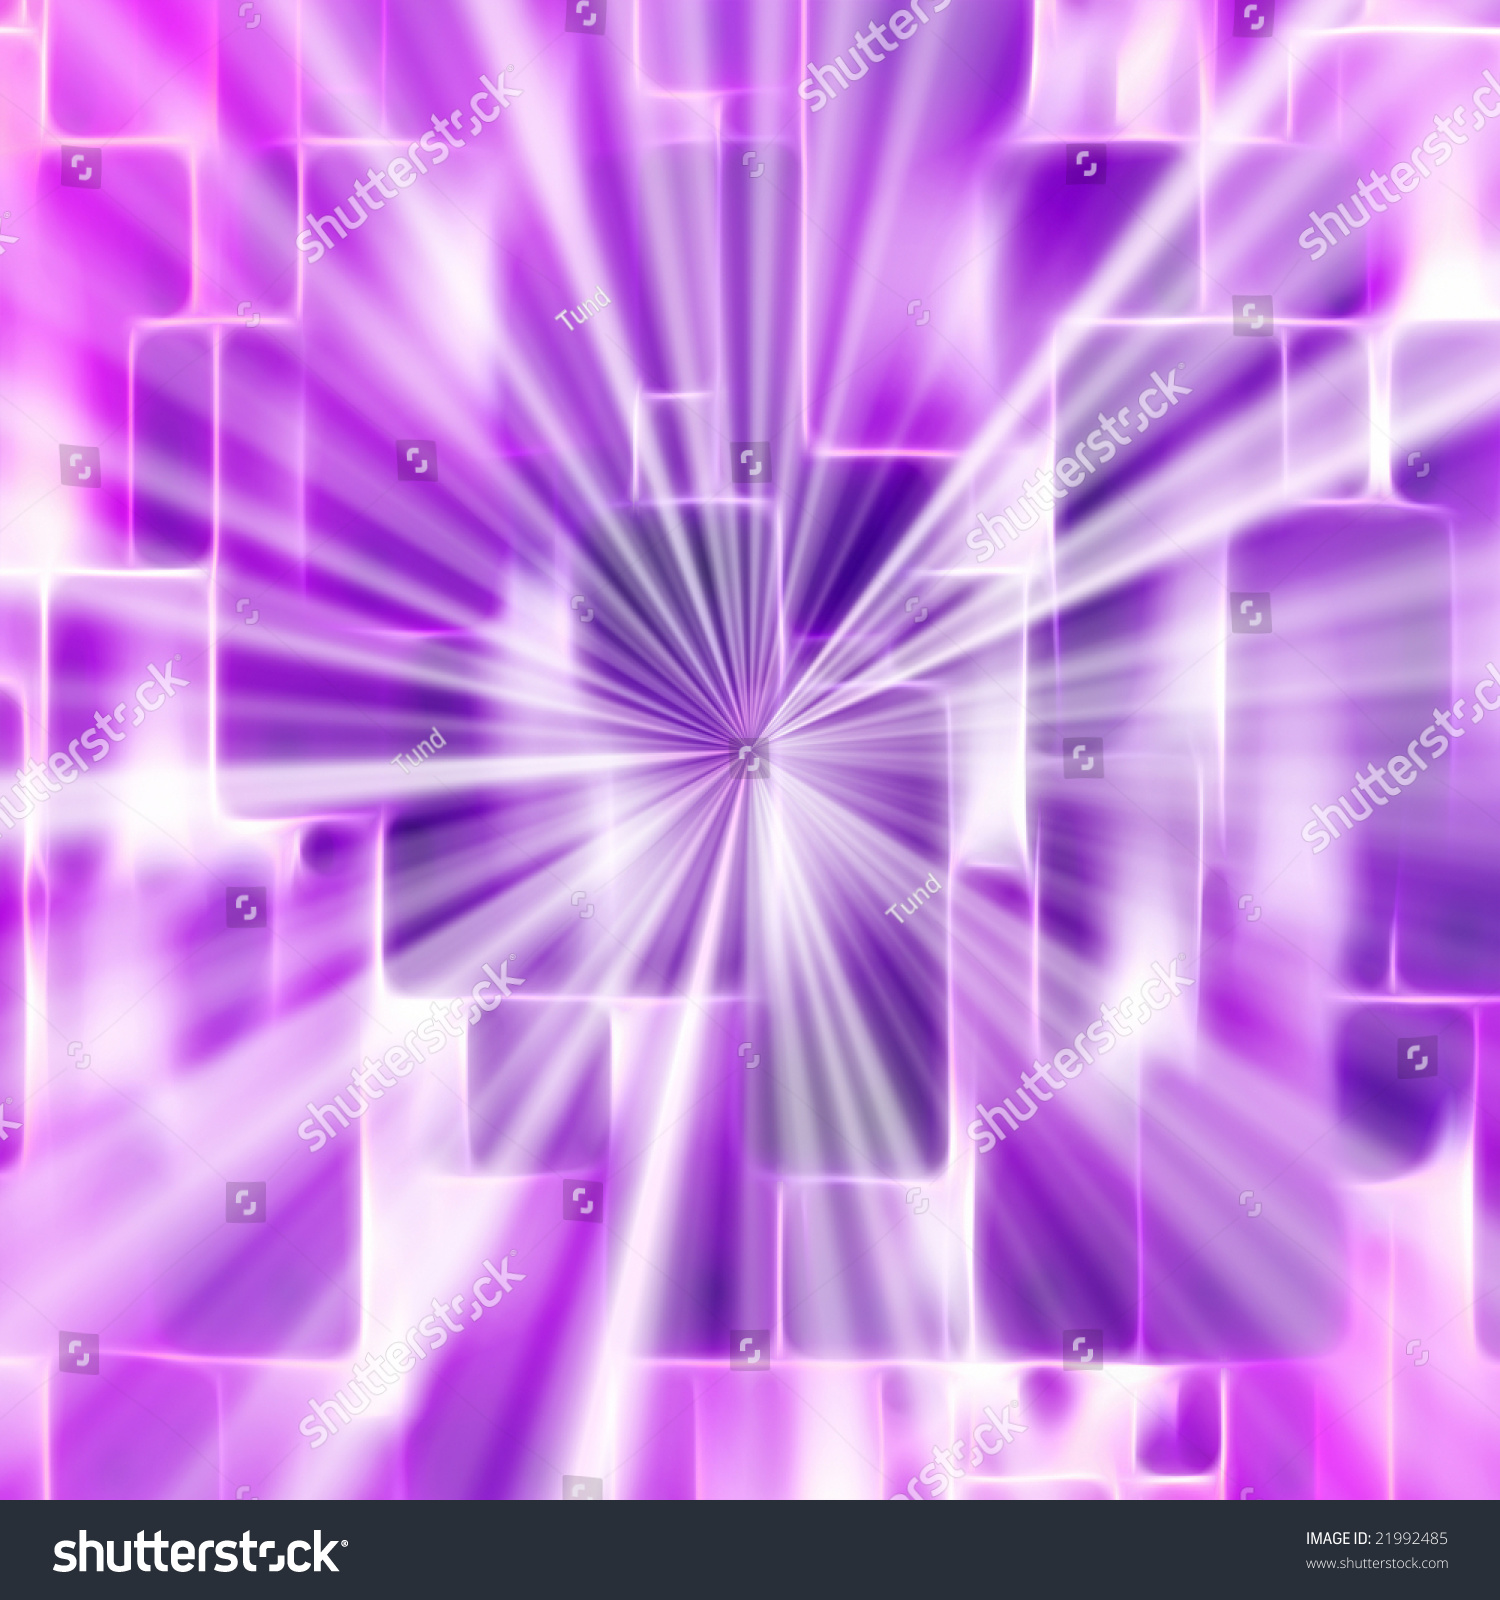 Pink Technology Background Stock Photo 21992485 : Shutterstock